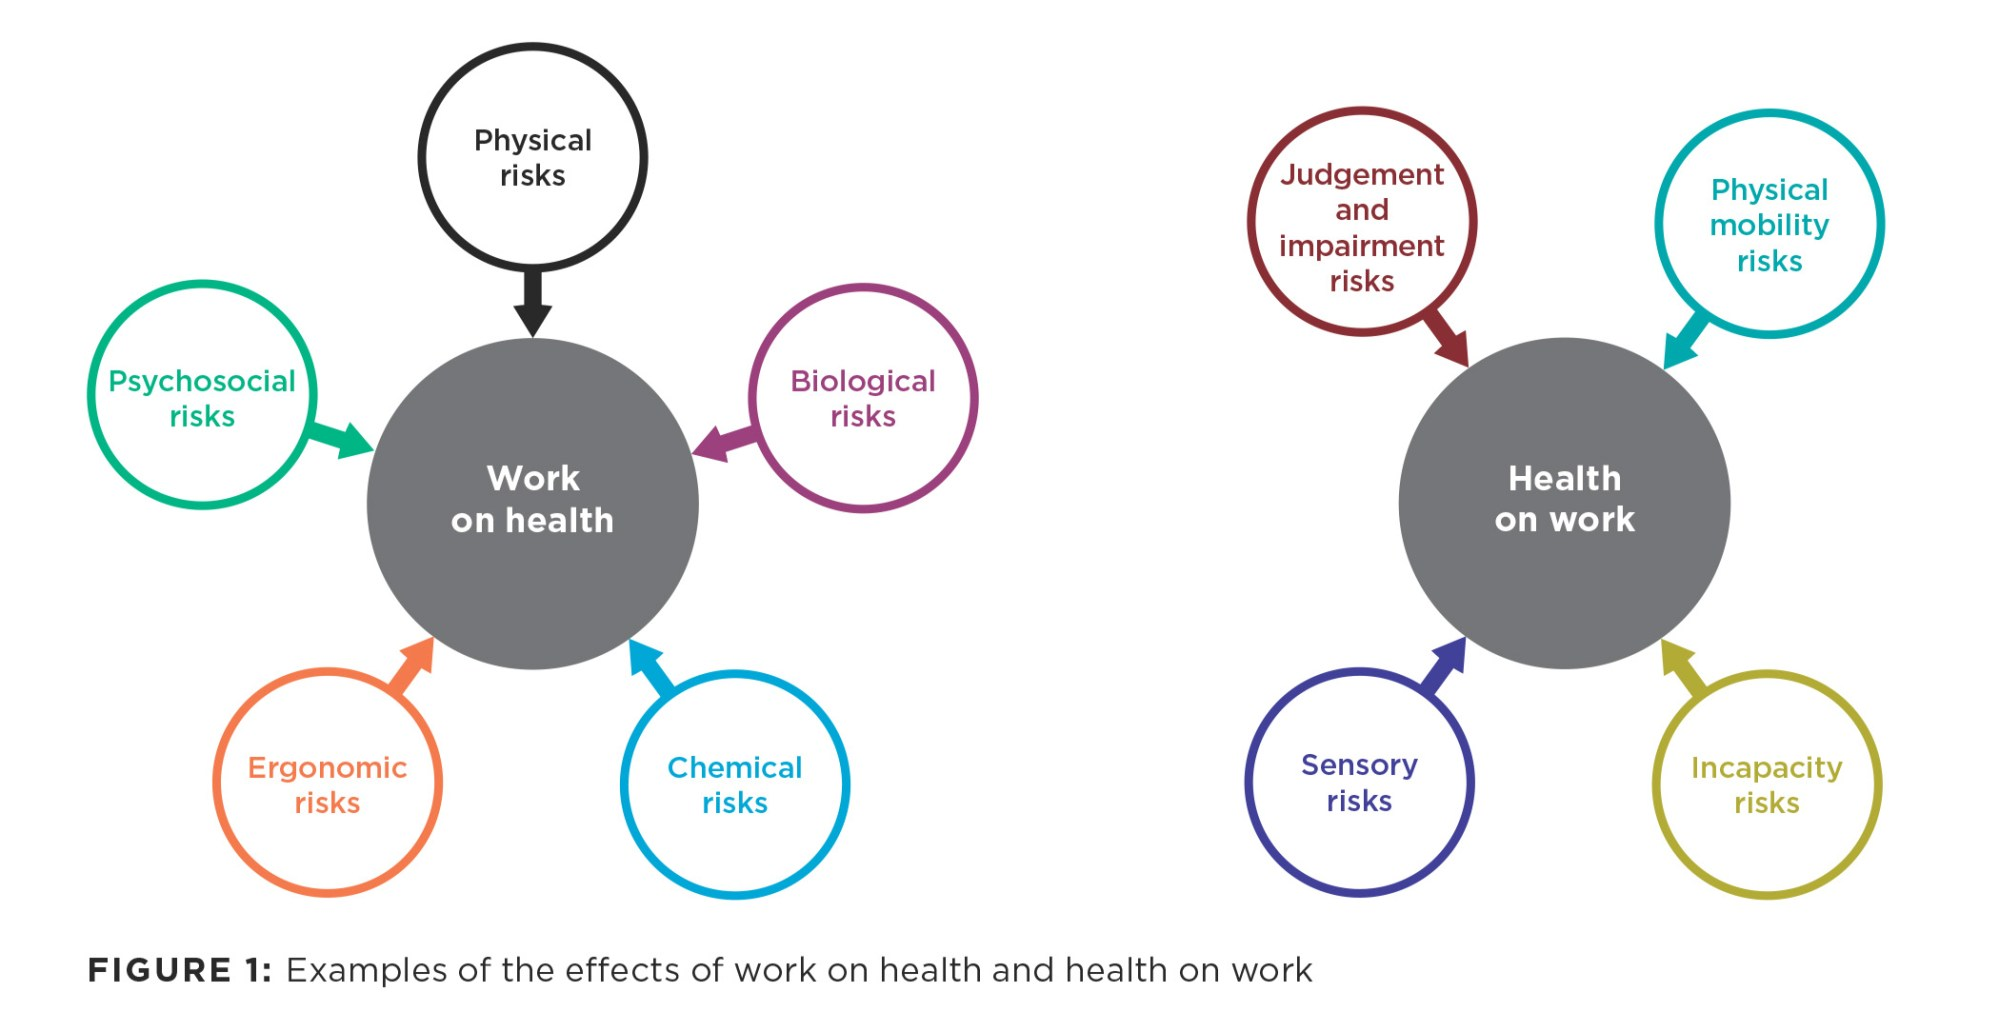 hight resolution of  image examples of the effects of work on health and health on work